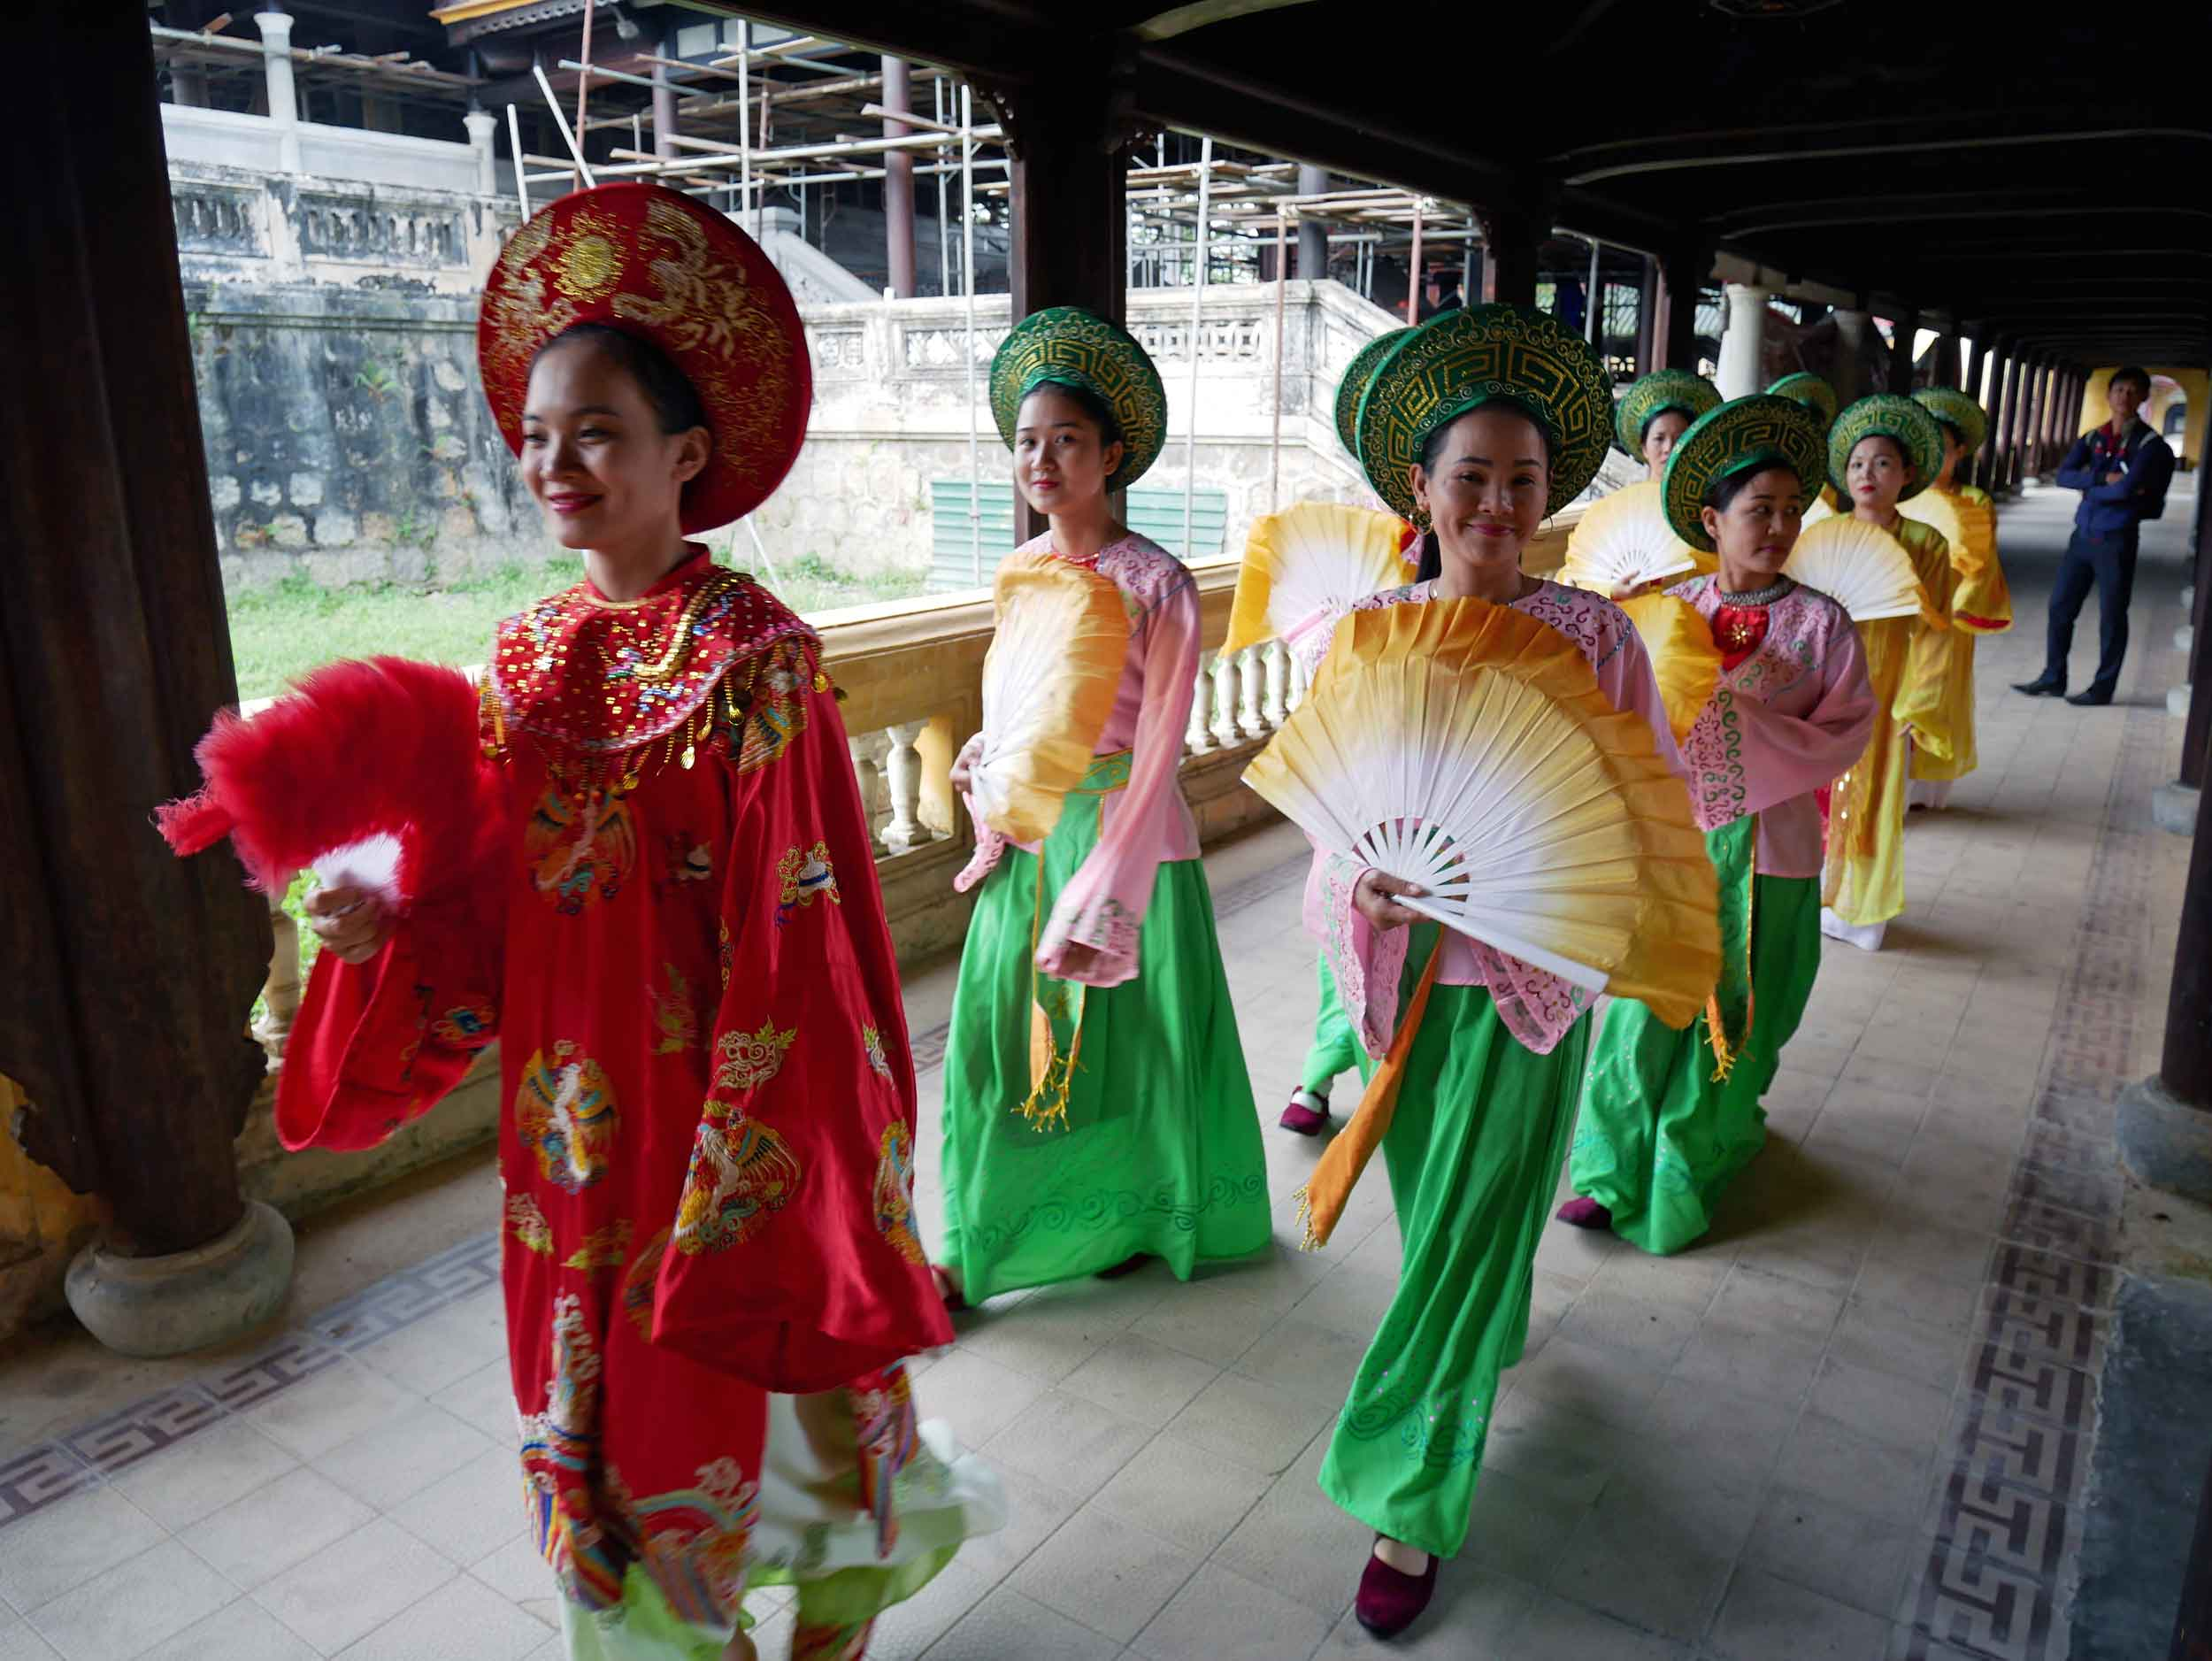 We passed women in colorful costumes readying for a traditional court performance.